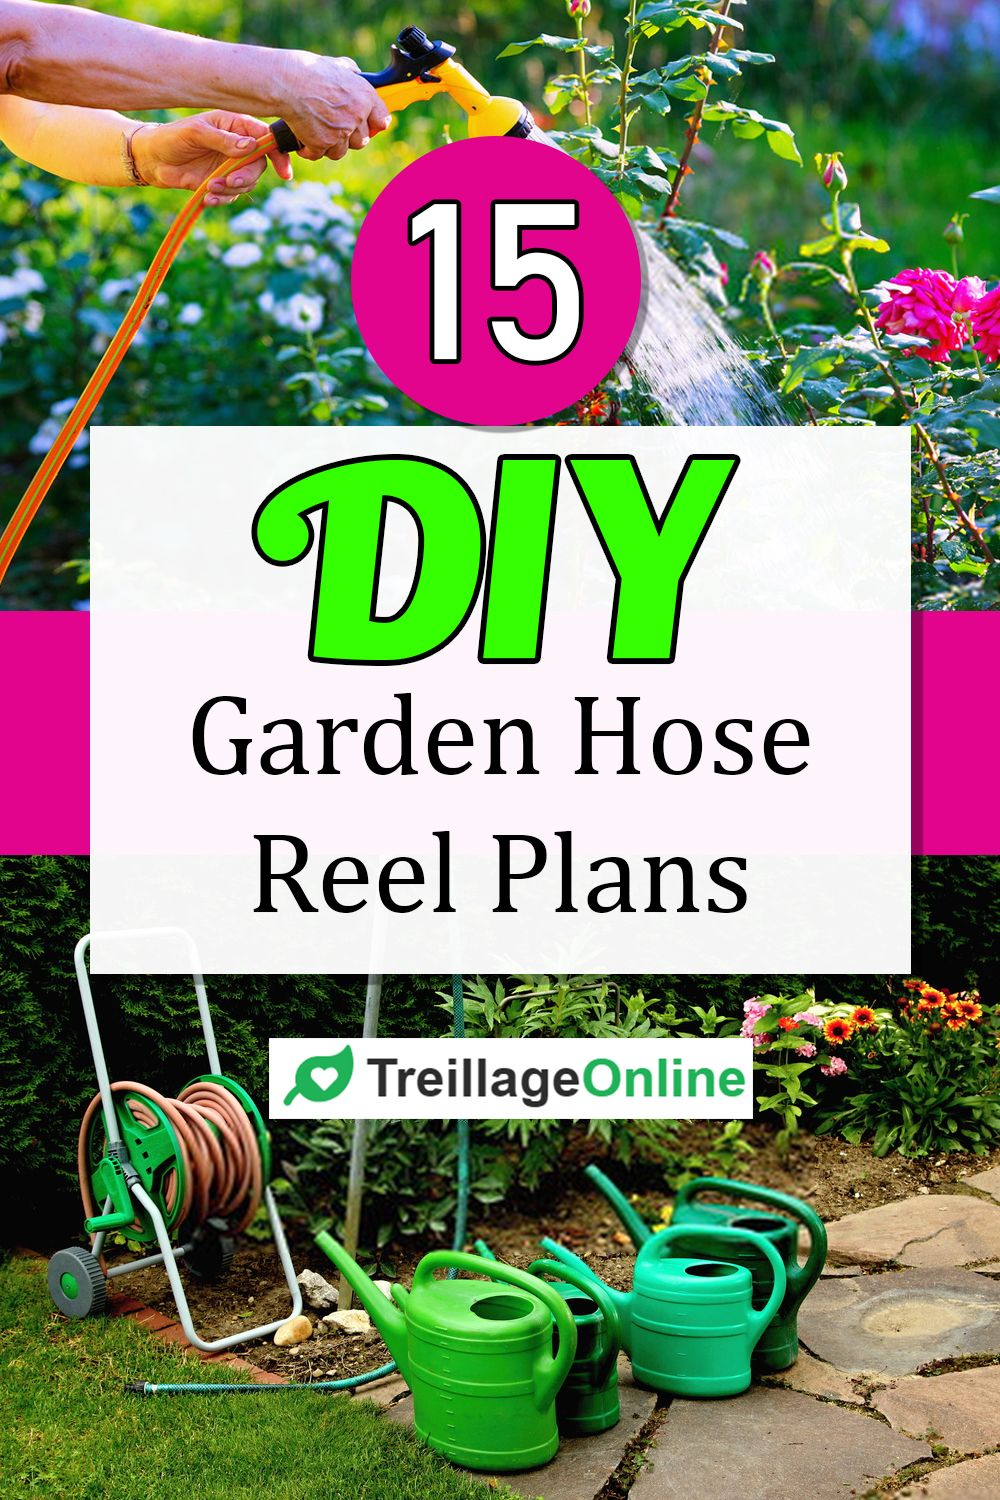 Using a hose reel is a great way to store your hose and prolong the longevity of the pipe. We have curated from the internet 15 amazing do-it-yourself garden hose reel plans to get you busy around your garden. Most of these plans are easy to carry out and do not require high technical skills to construct.